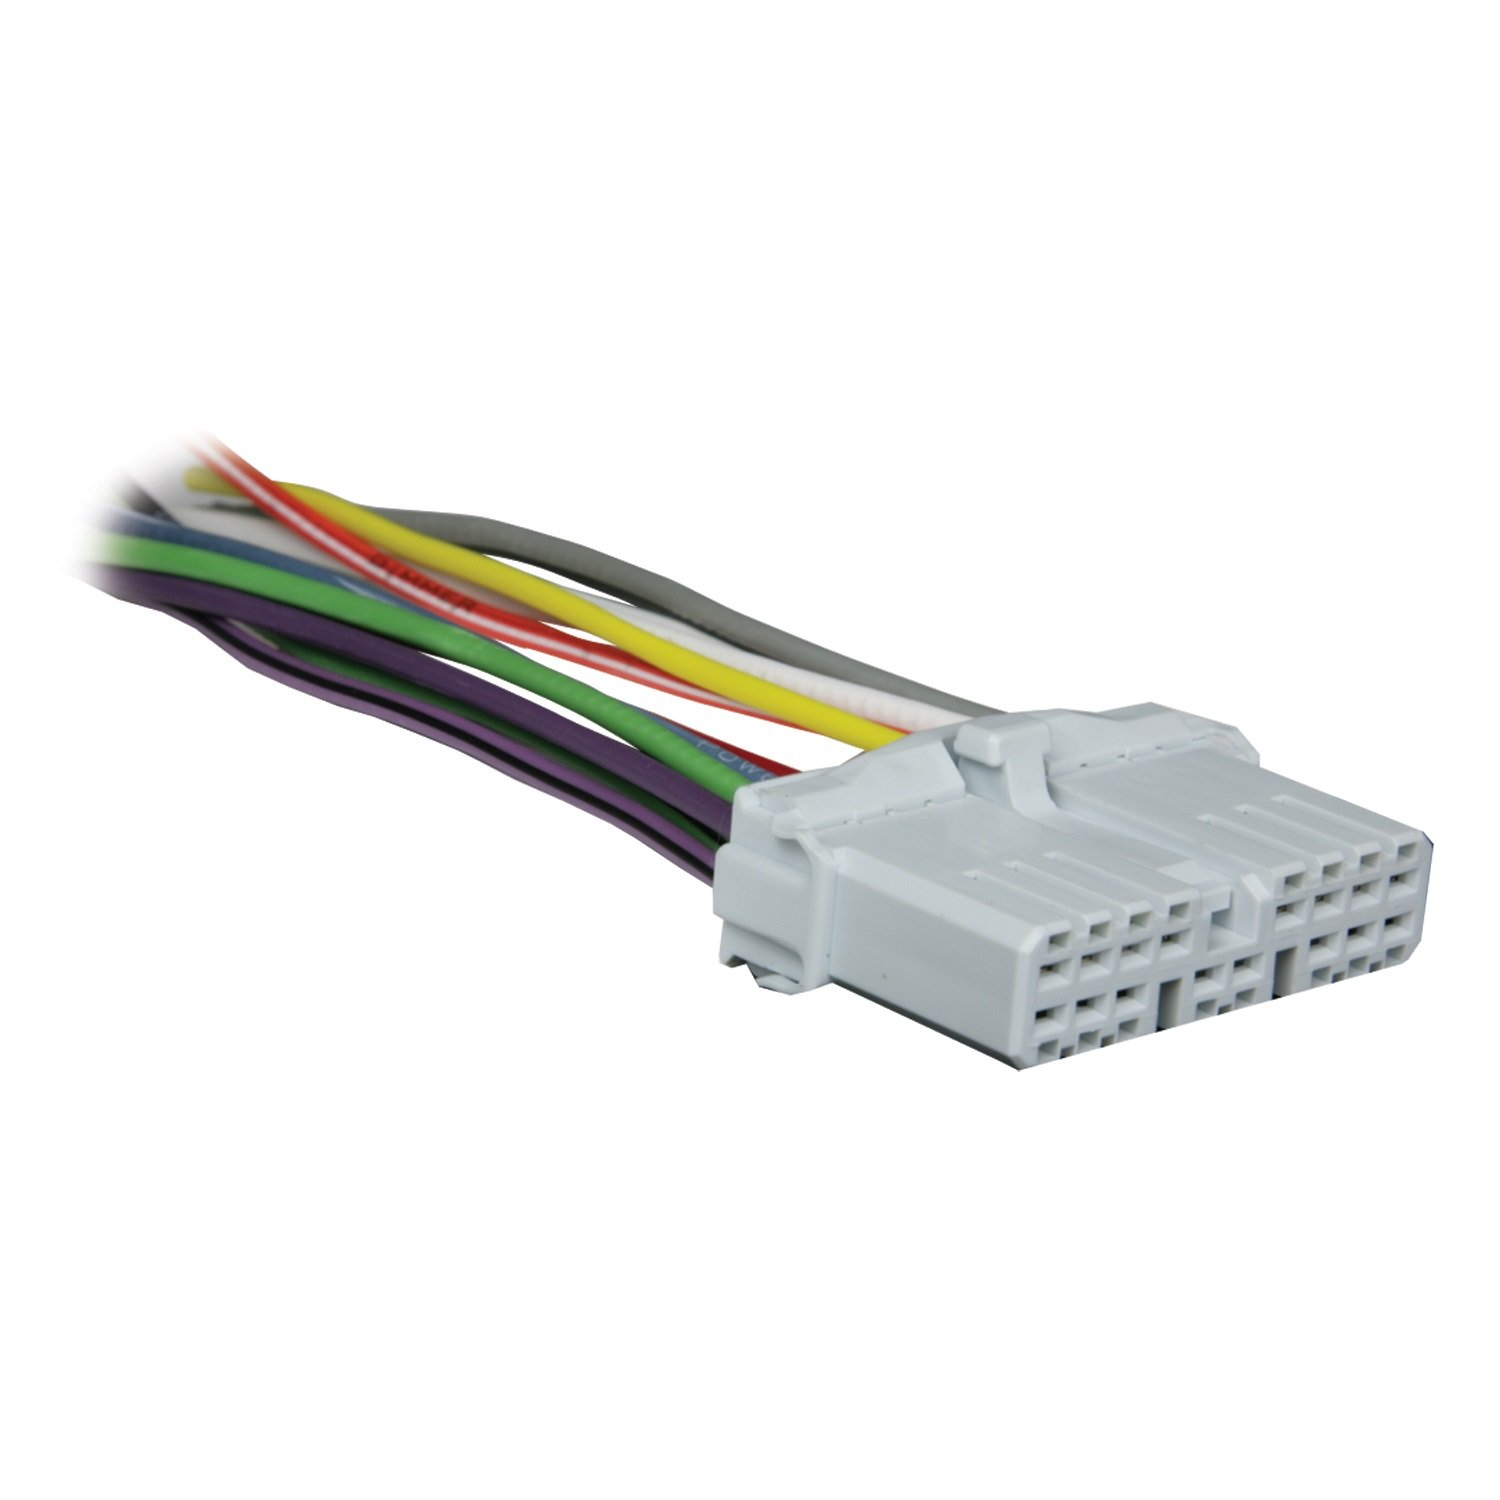 613QdgpH1YL._SL1500_ radio wiring harnesses amazon com ksc-wa100 wiring harness at couponss.co